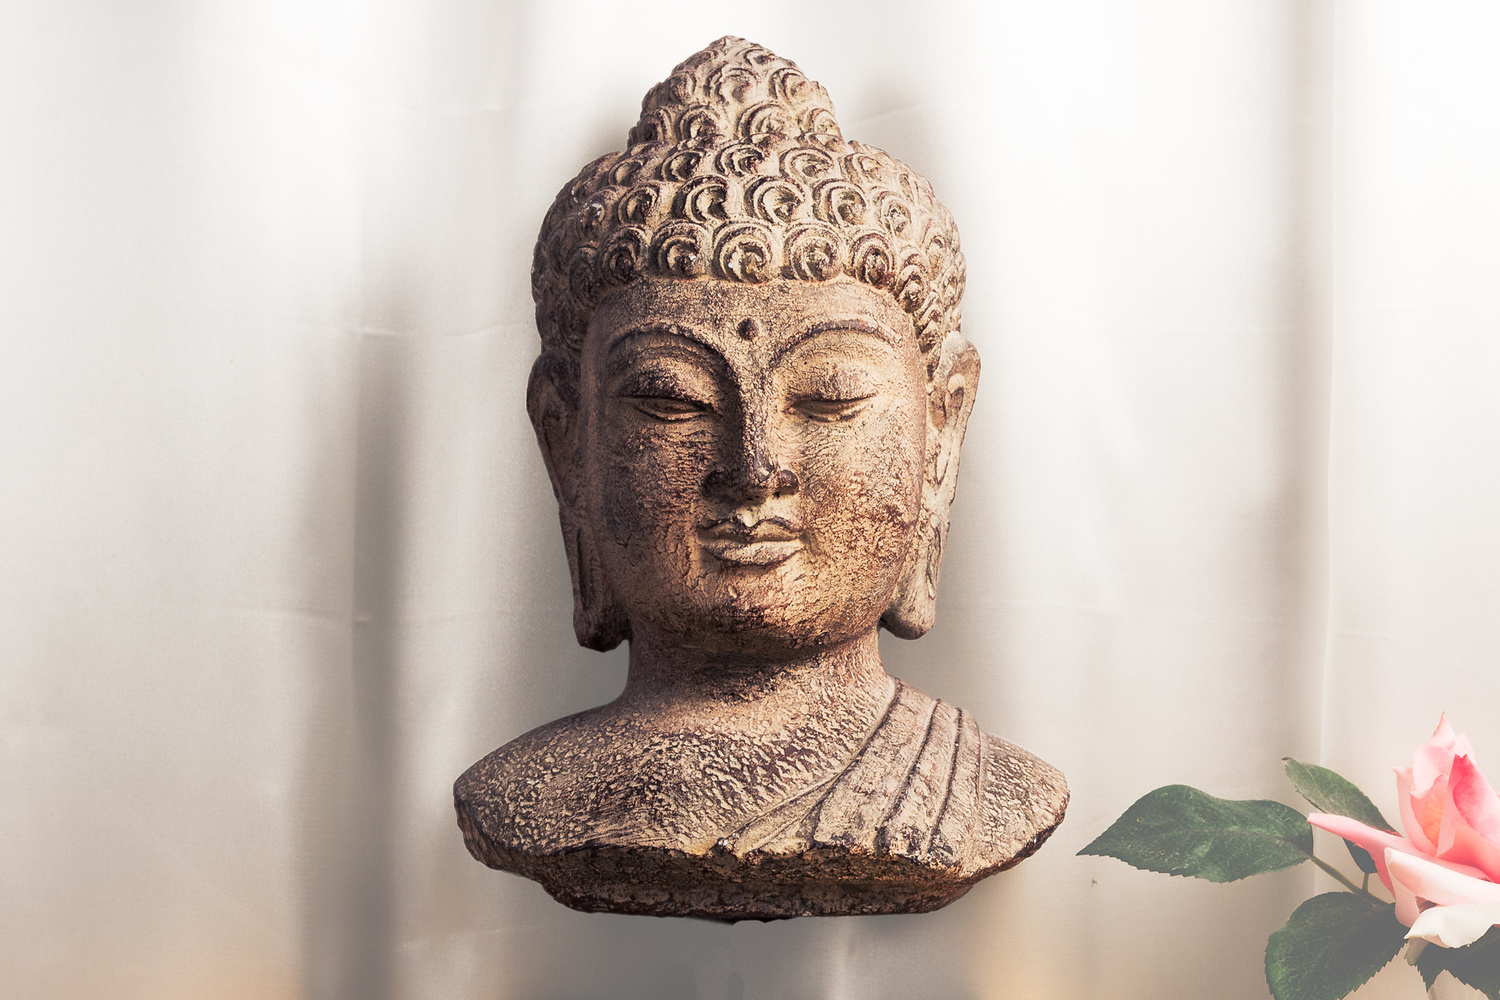 A floating bust of the Buddha in front of a silk curtain with a pink flower and green leaves.